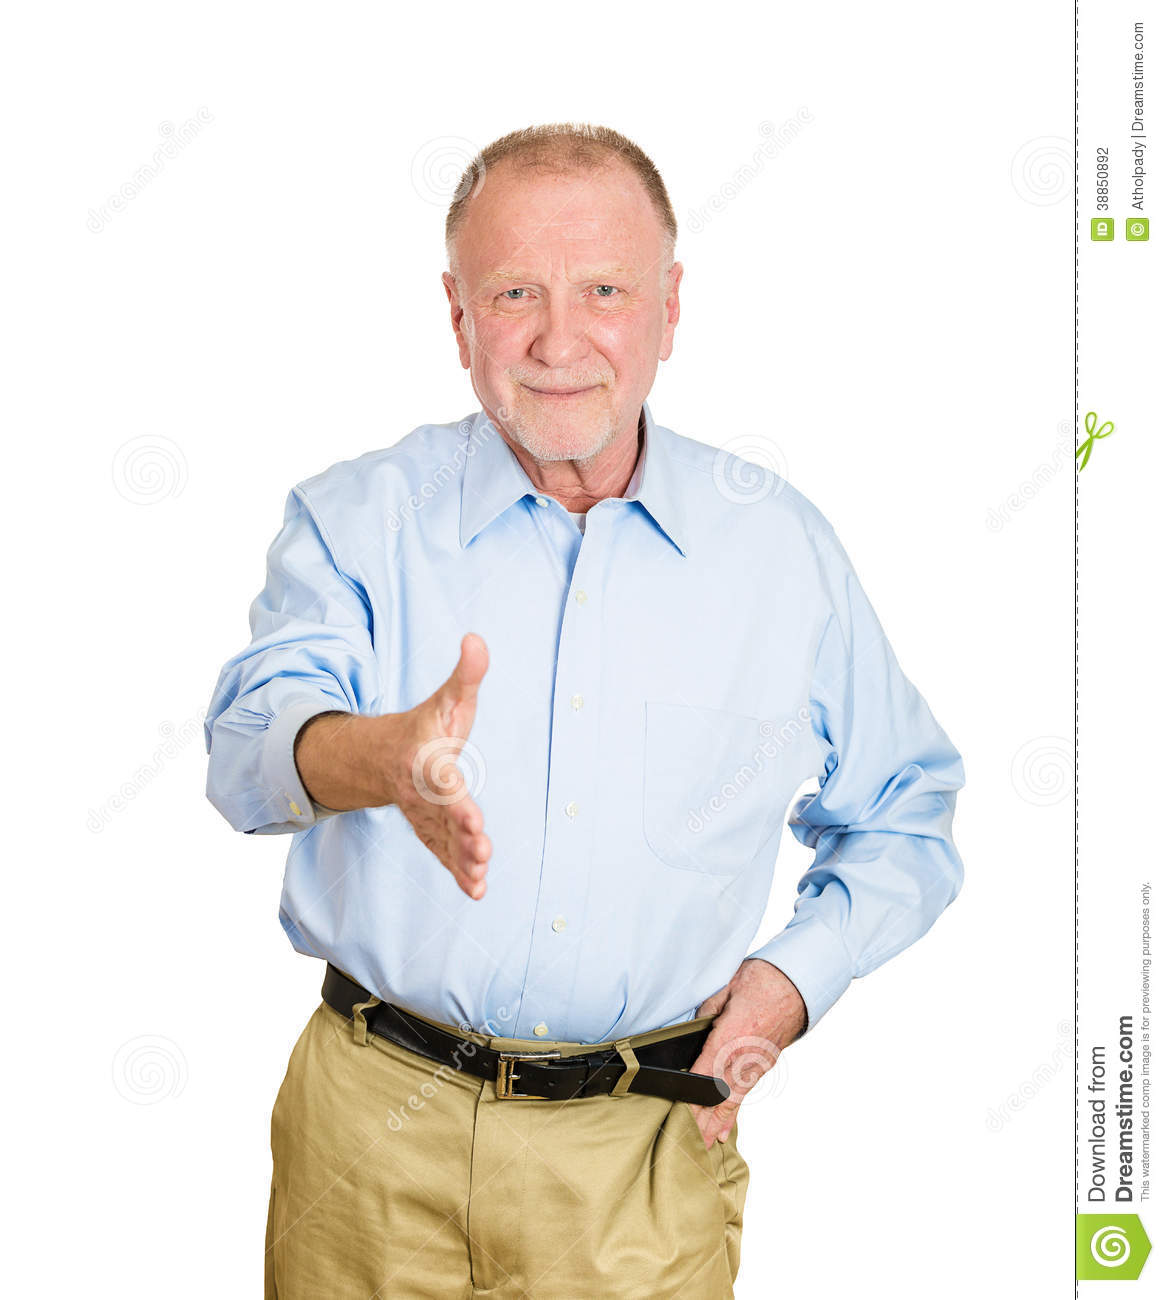 Https Www Dreamstime Com Stock Photography Older Man Giving Handshake Closeup Portrait Senior Mature Smiling Extending Arm You Camera Gesture Isolated White Image38850892